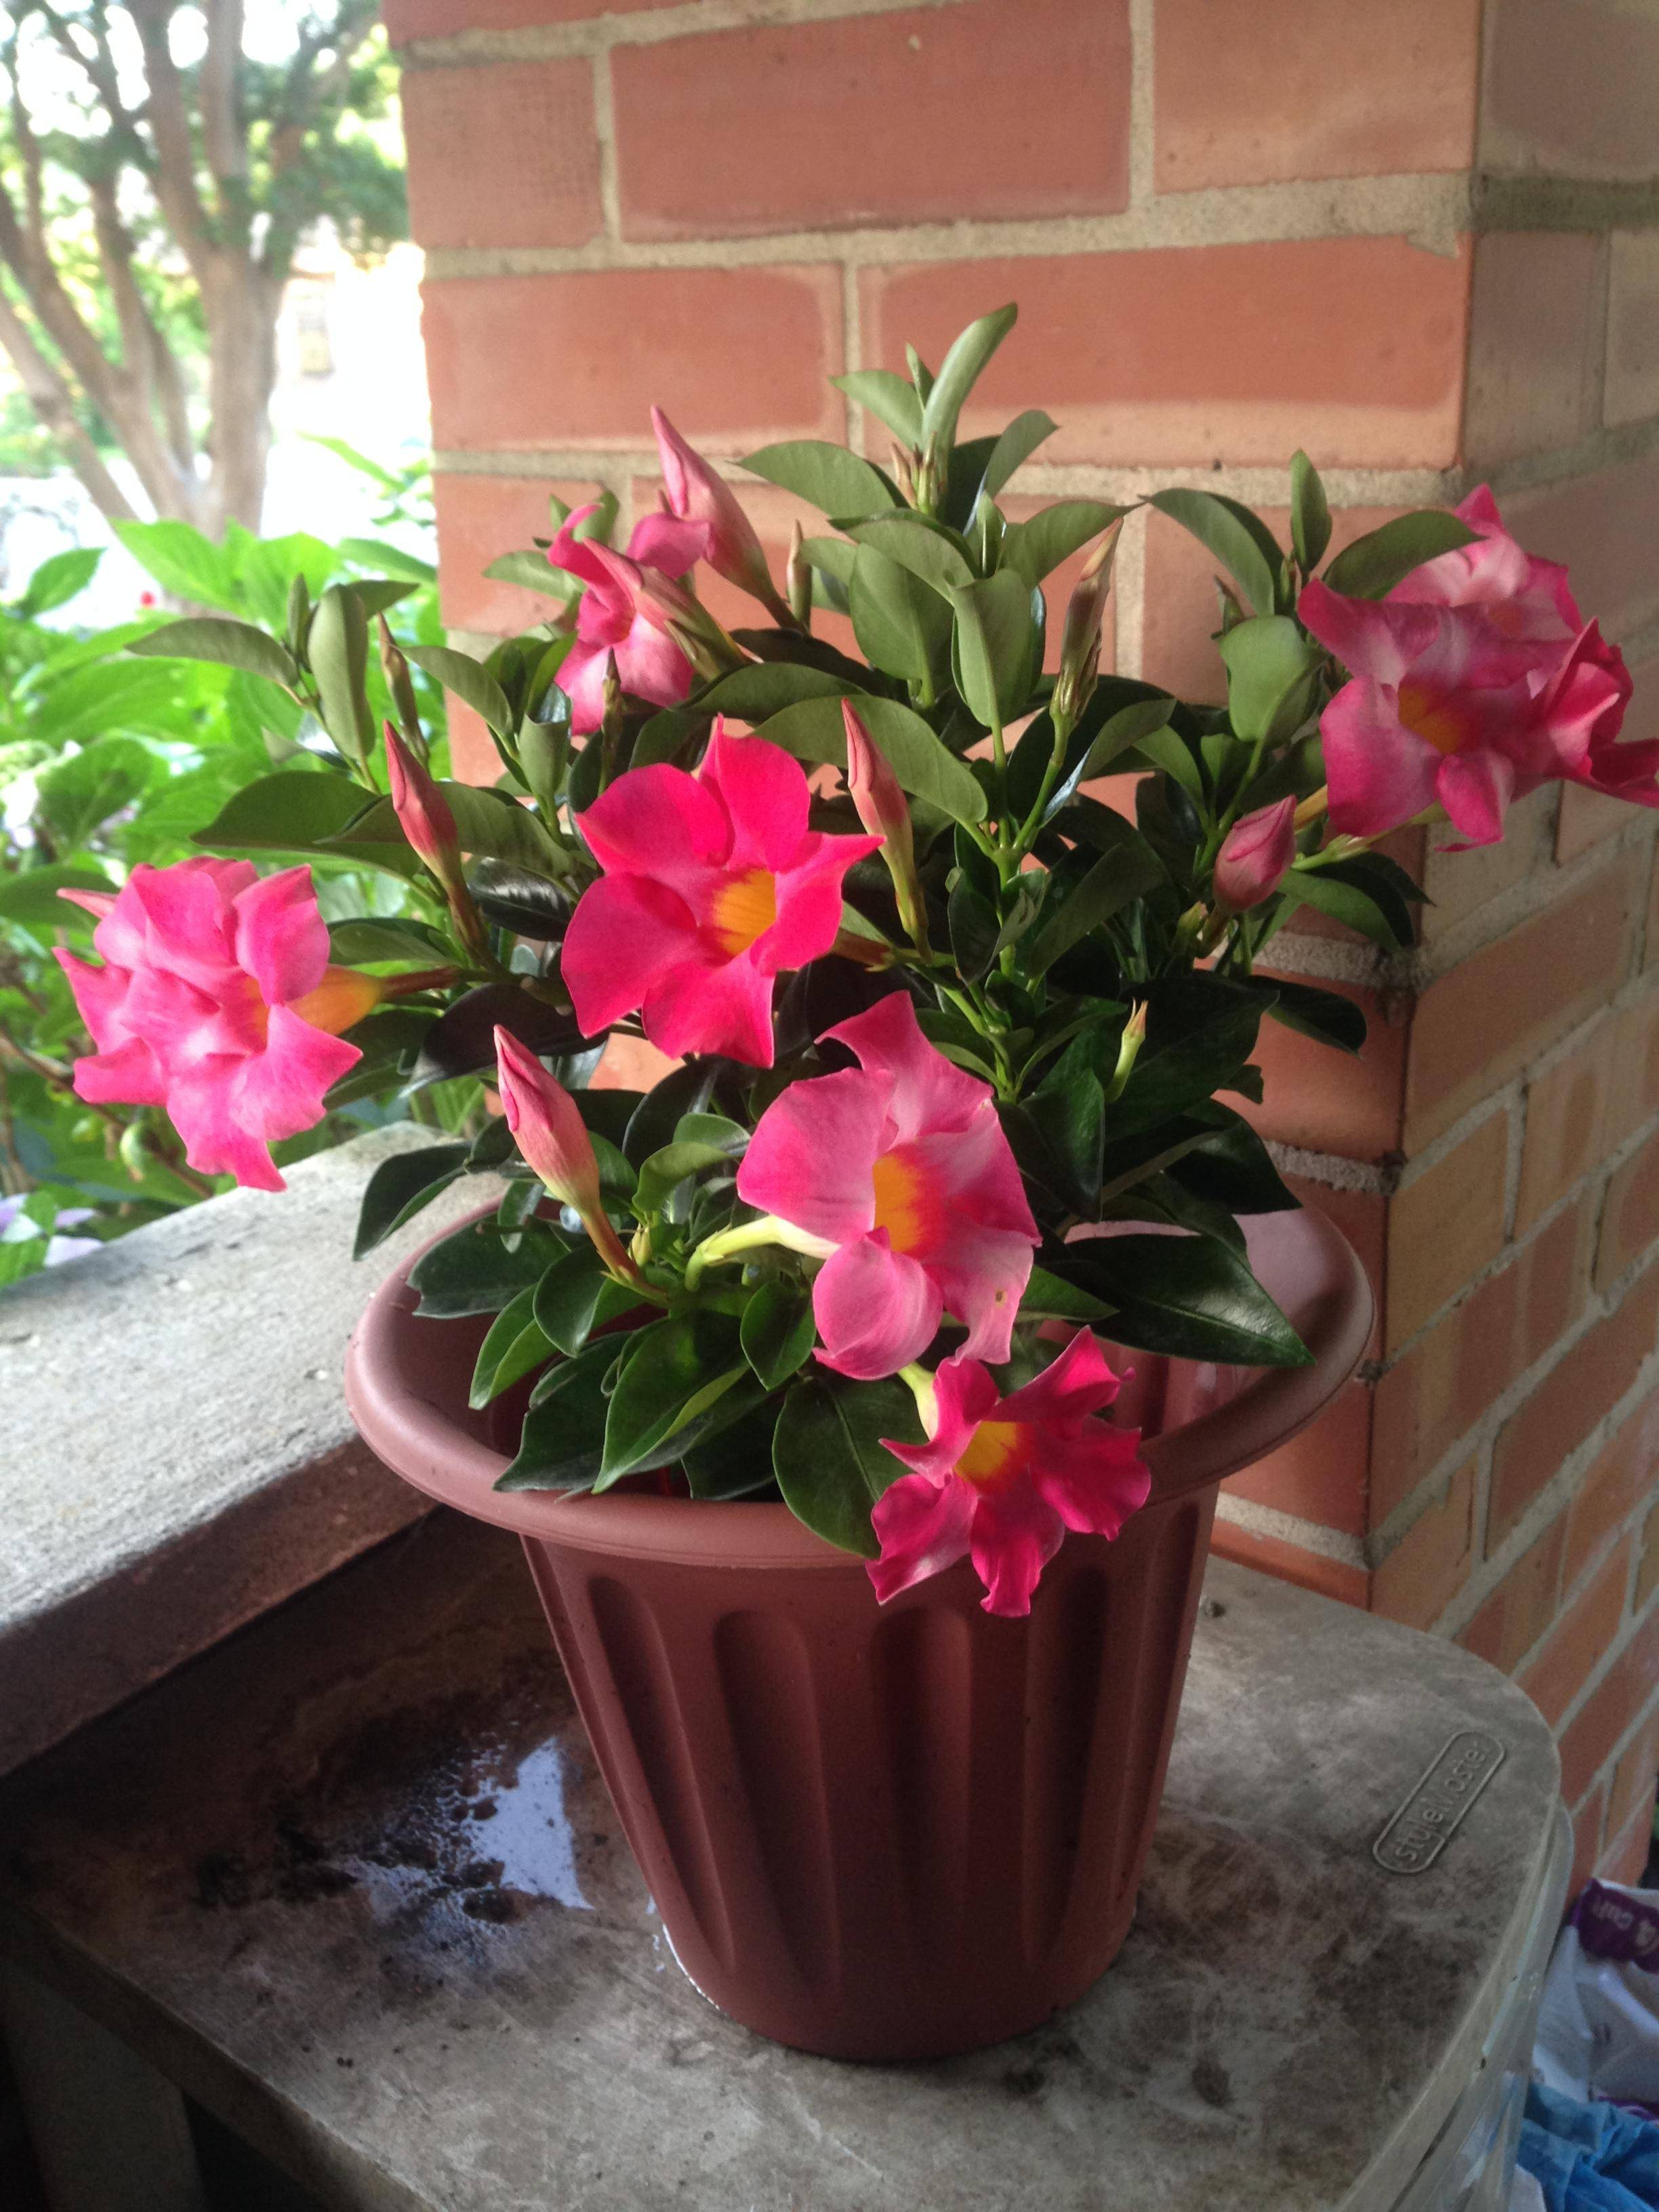 Indoors I Need Advice About A Dipladenia Related To